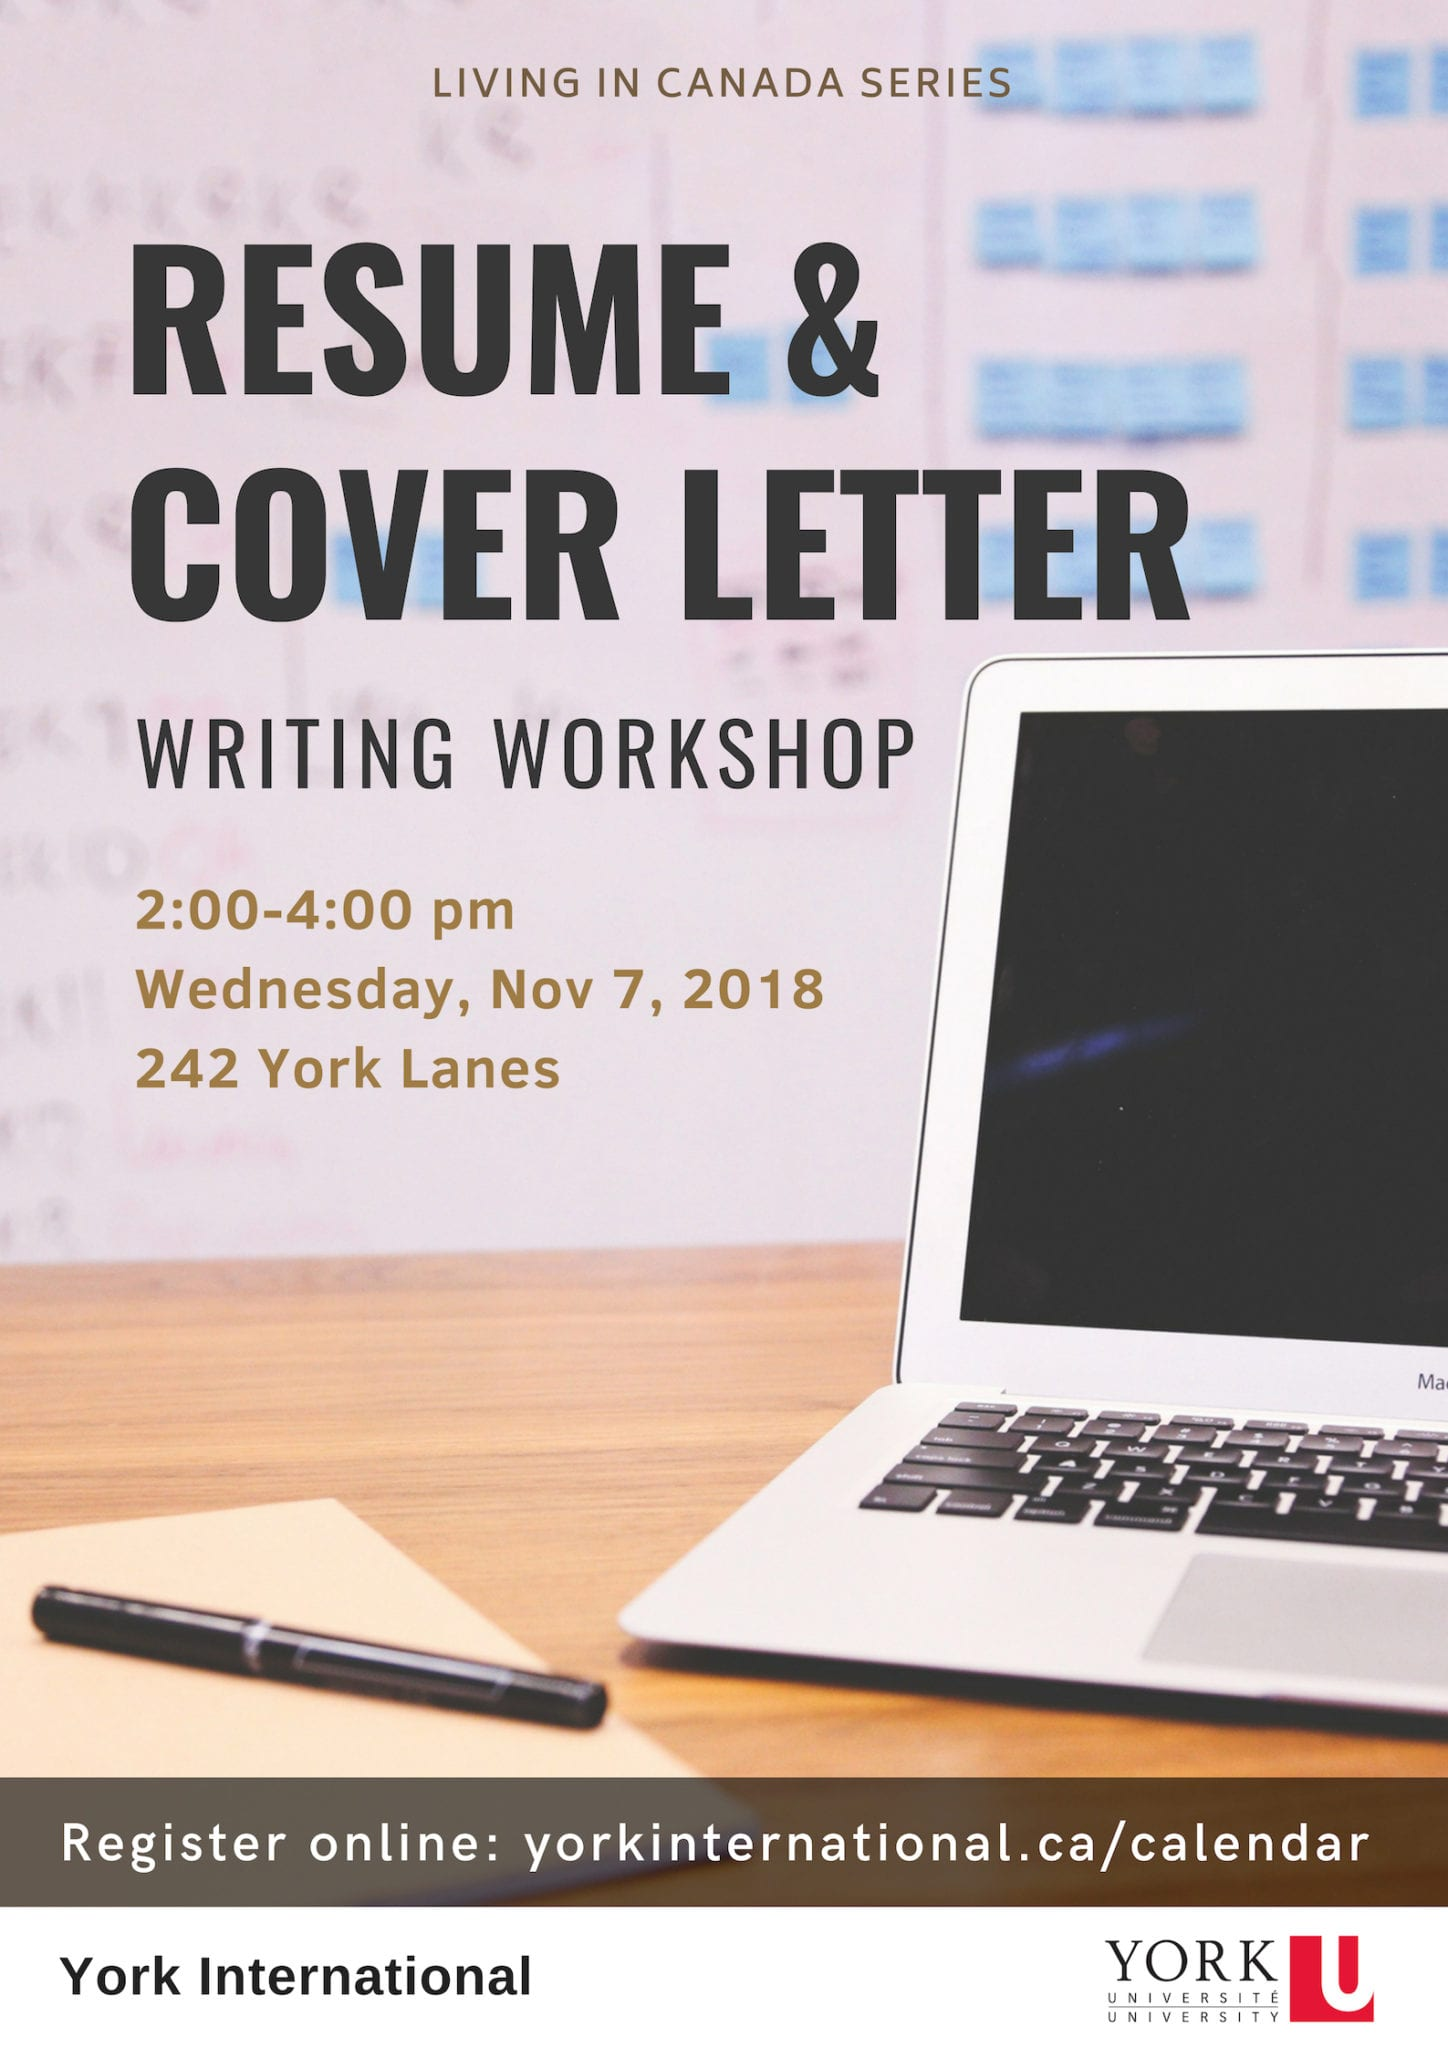 Resumé and Cover Letter Writing Workshop @ 242 York Lanes